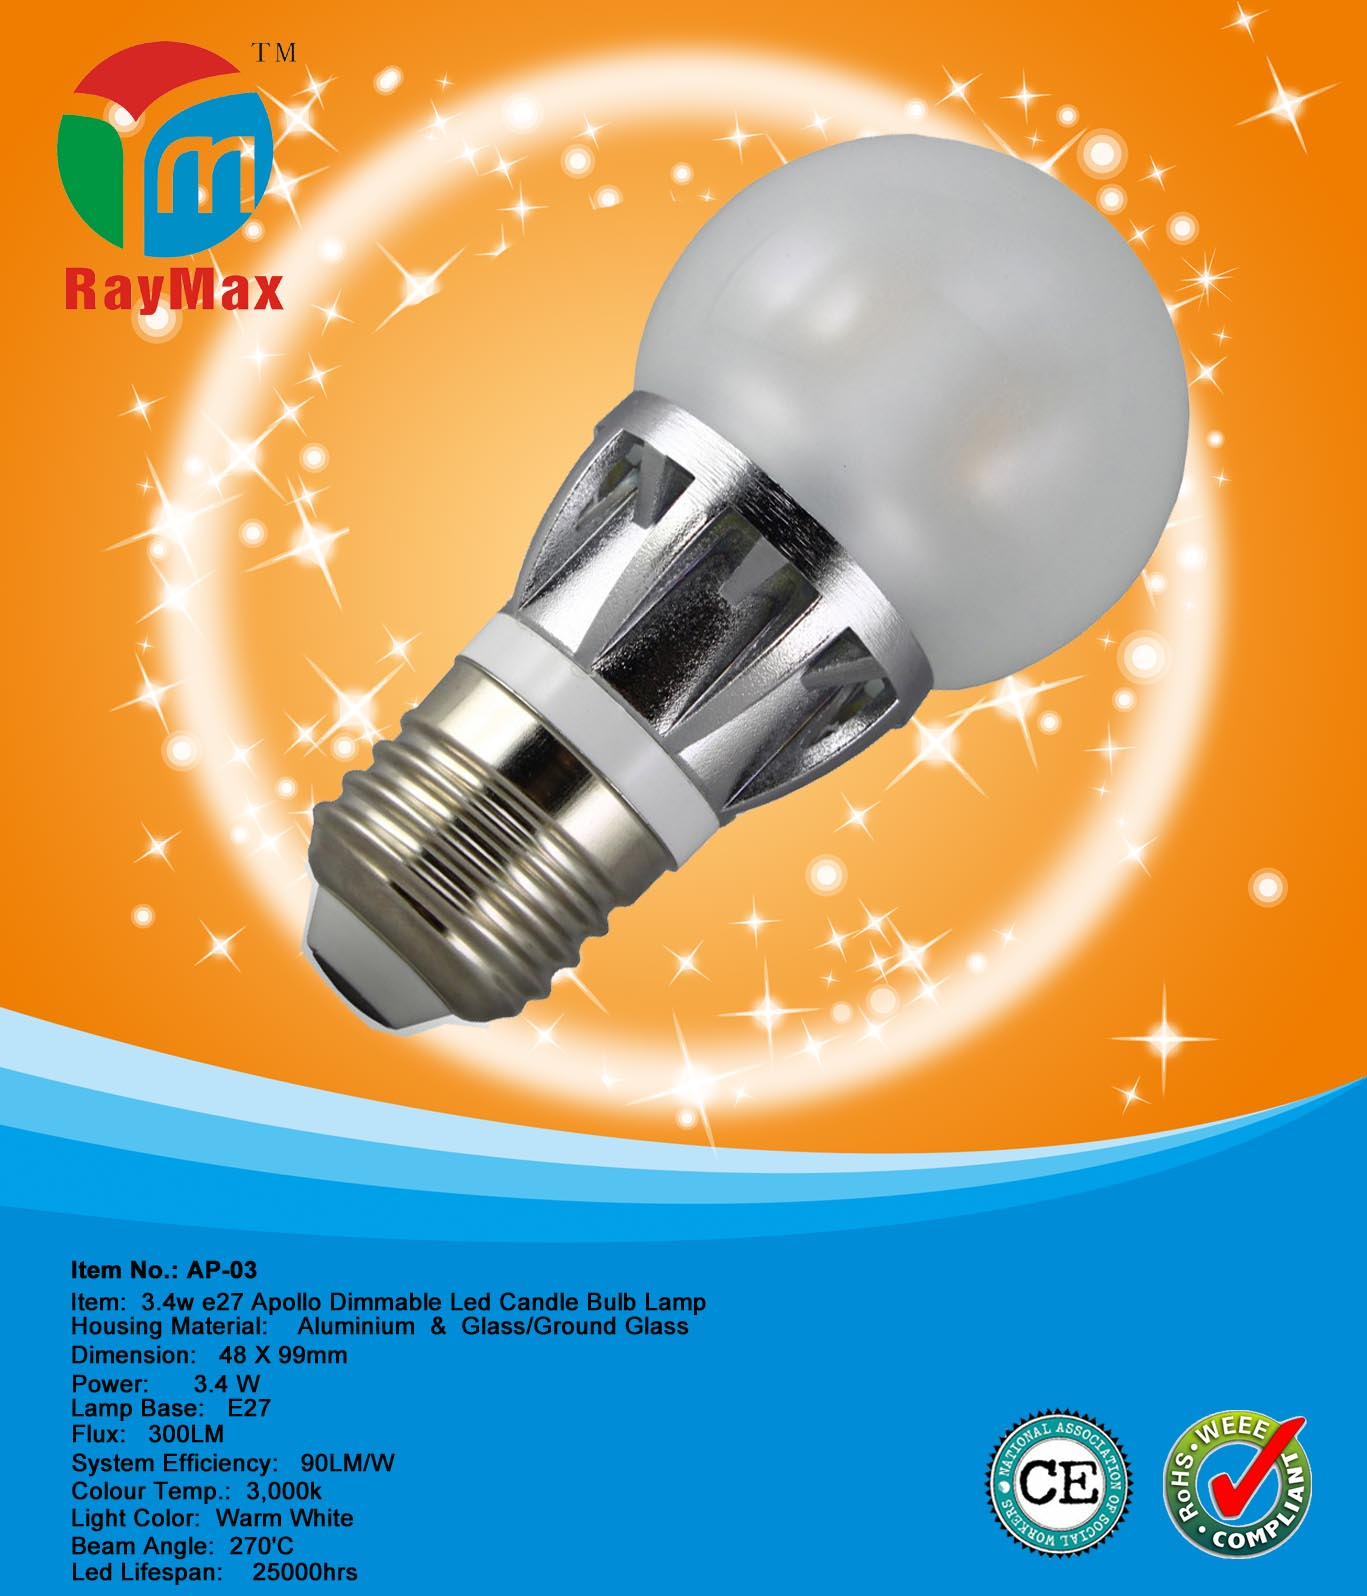 3.4W E27 dimmable led candle bulb lamp light